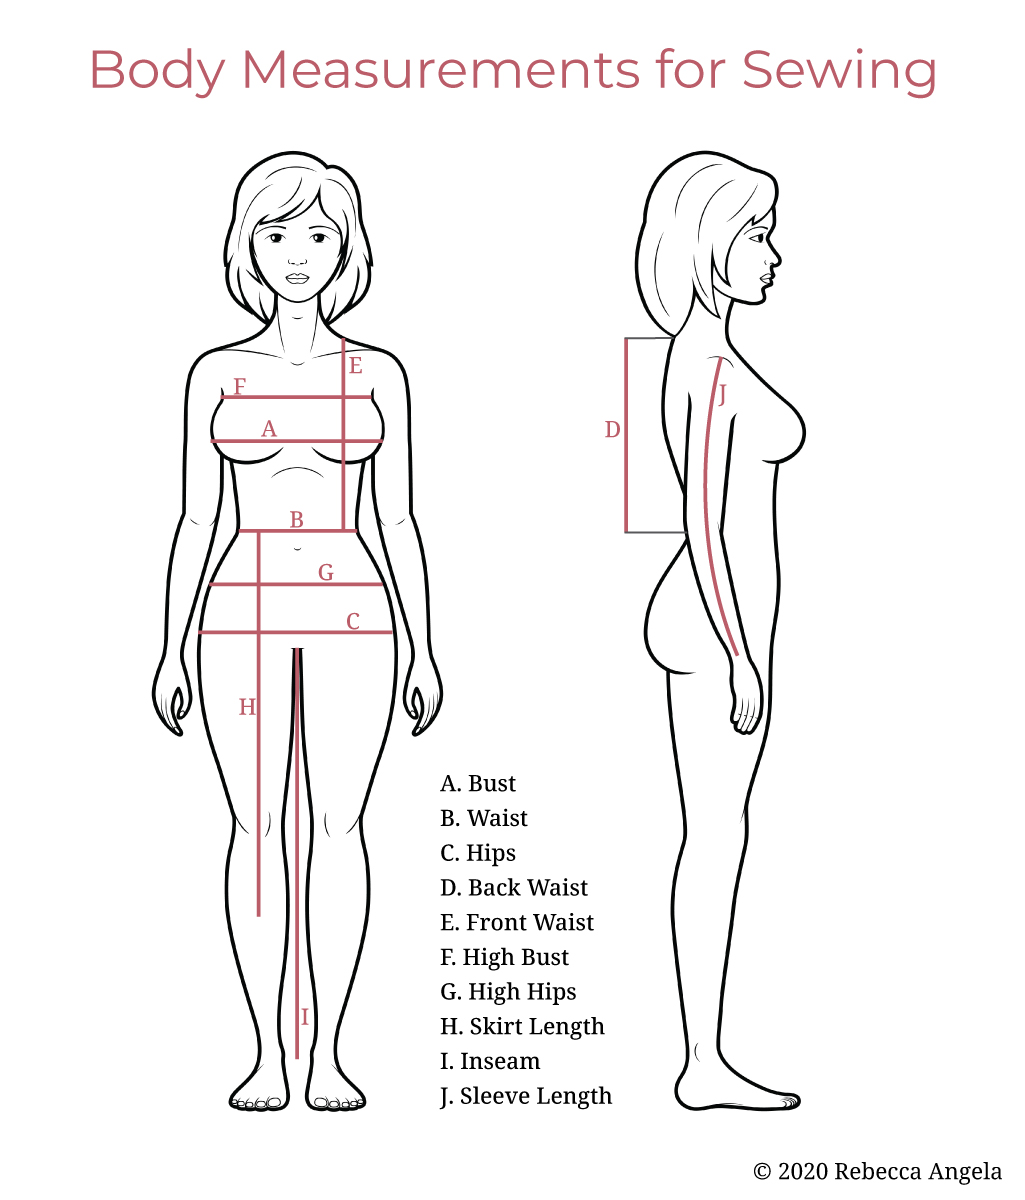 Diagram for body measurements for sewing